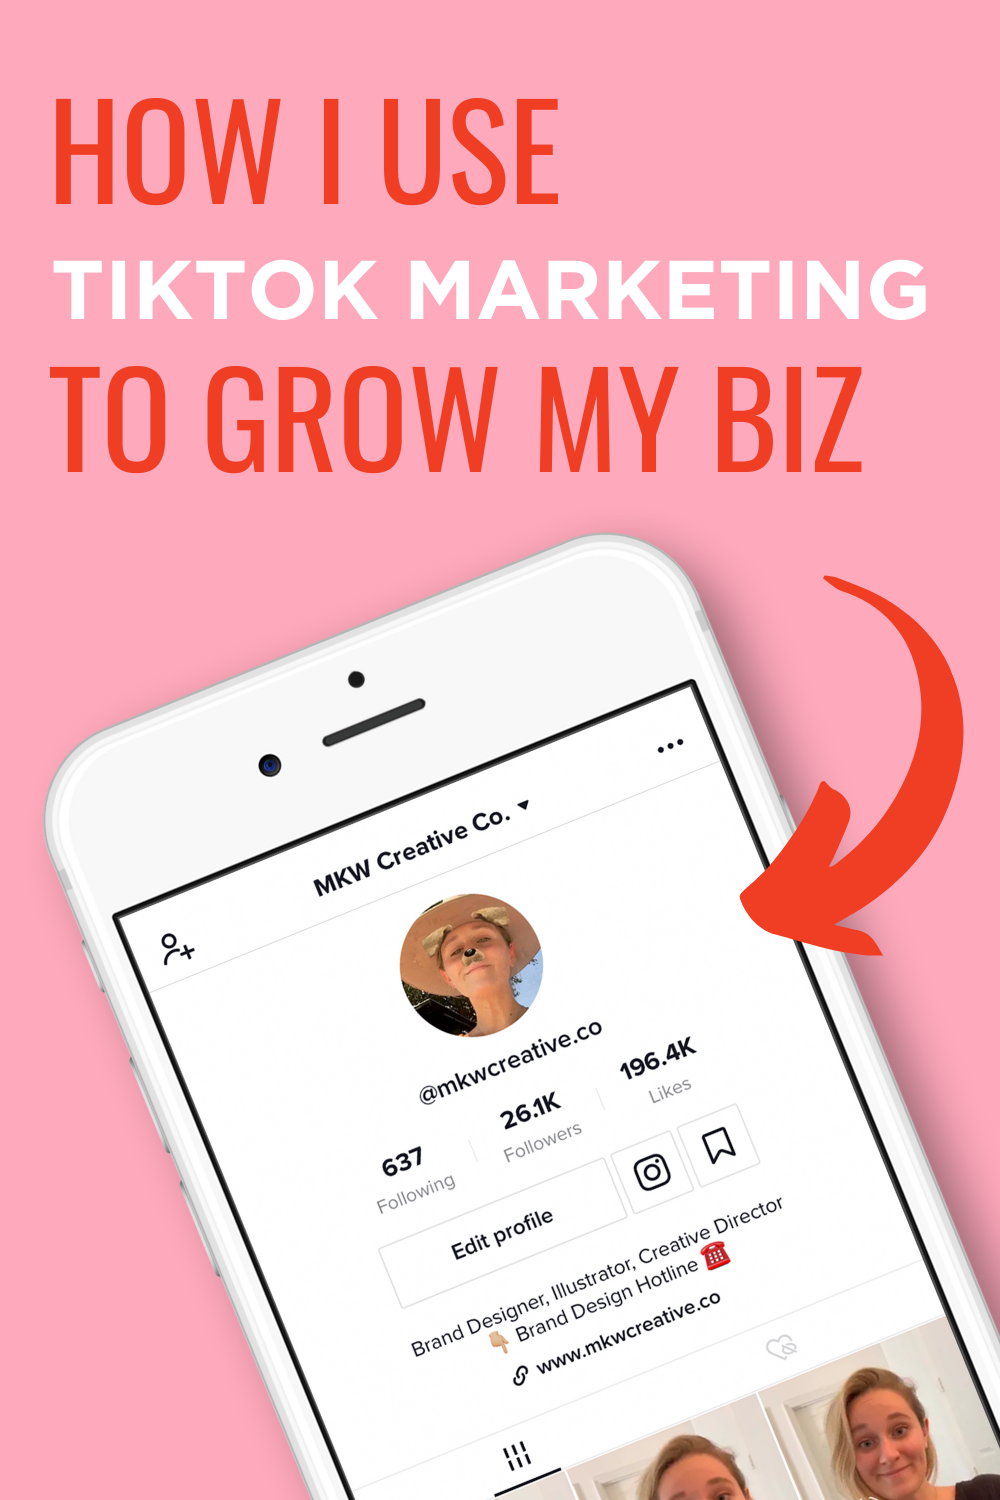 Tiktok For Business Video Training Mkw Creative Co Snapchat Marketing Snapchat Business Instagram Business